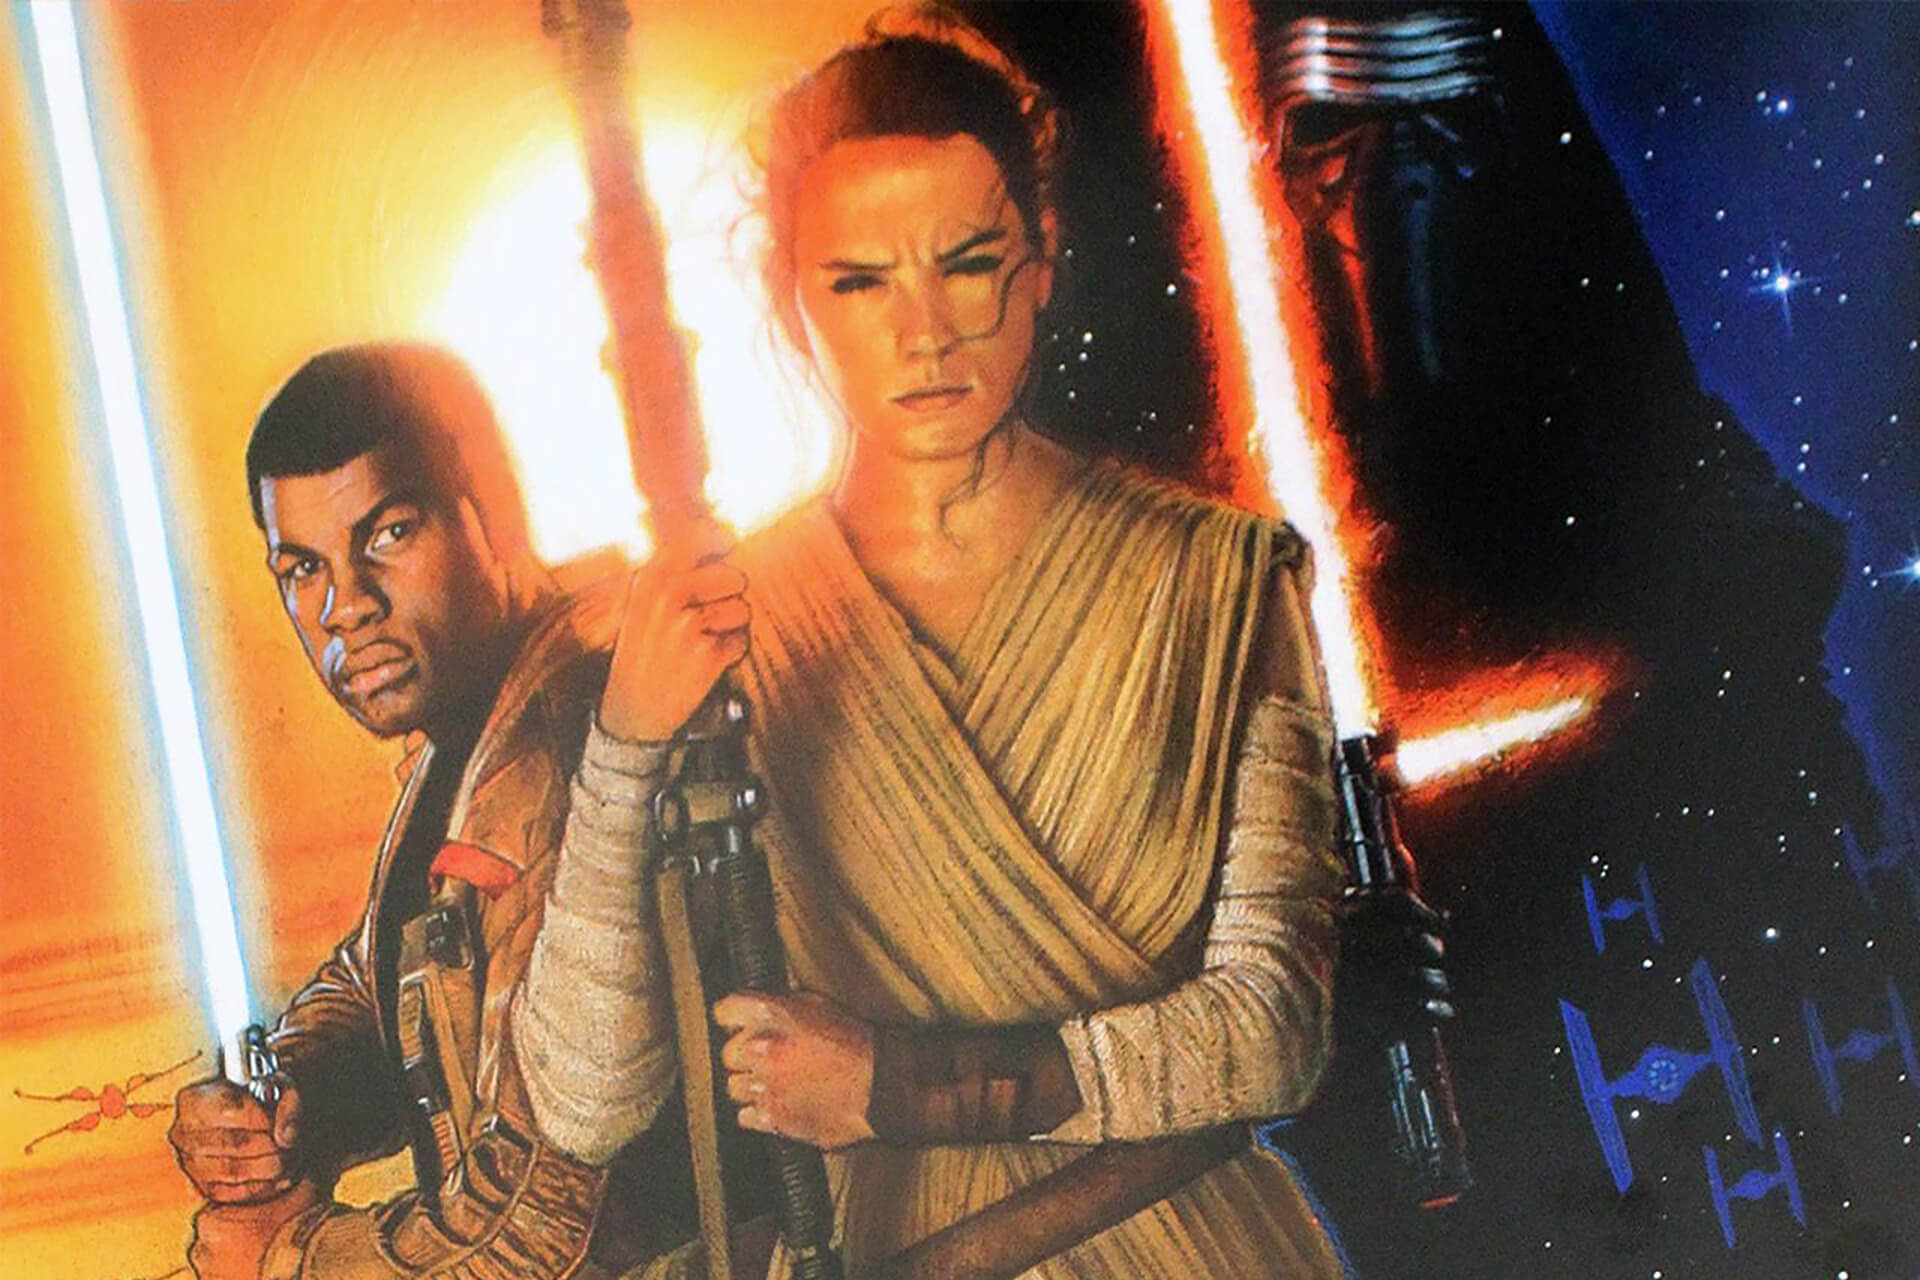 The Force Awakens books and novels announced